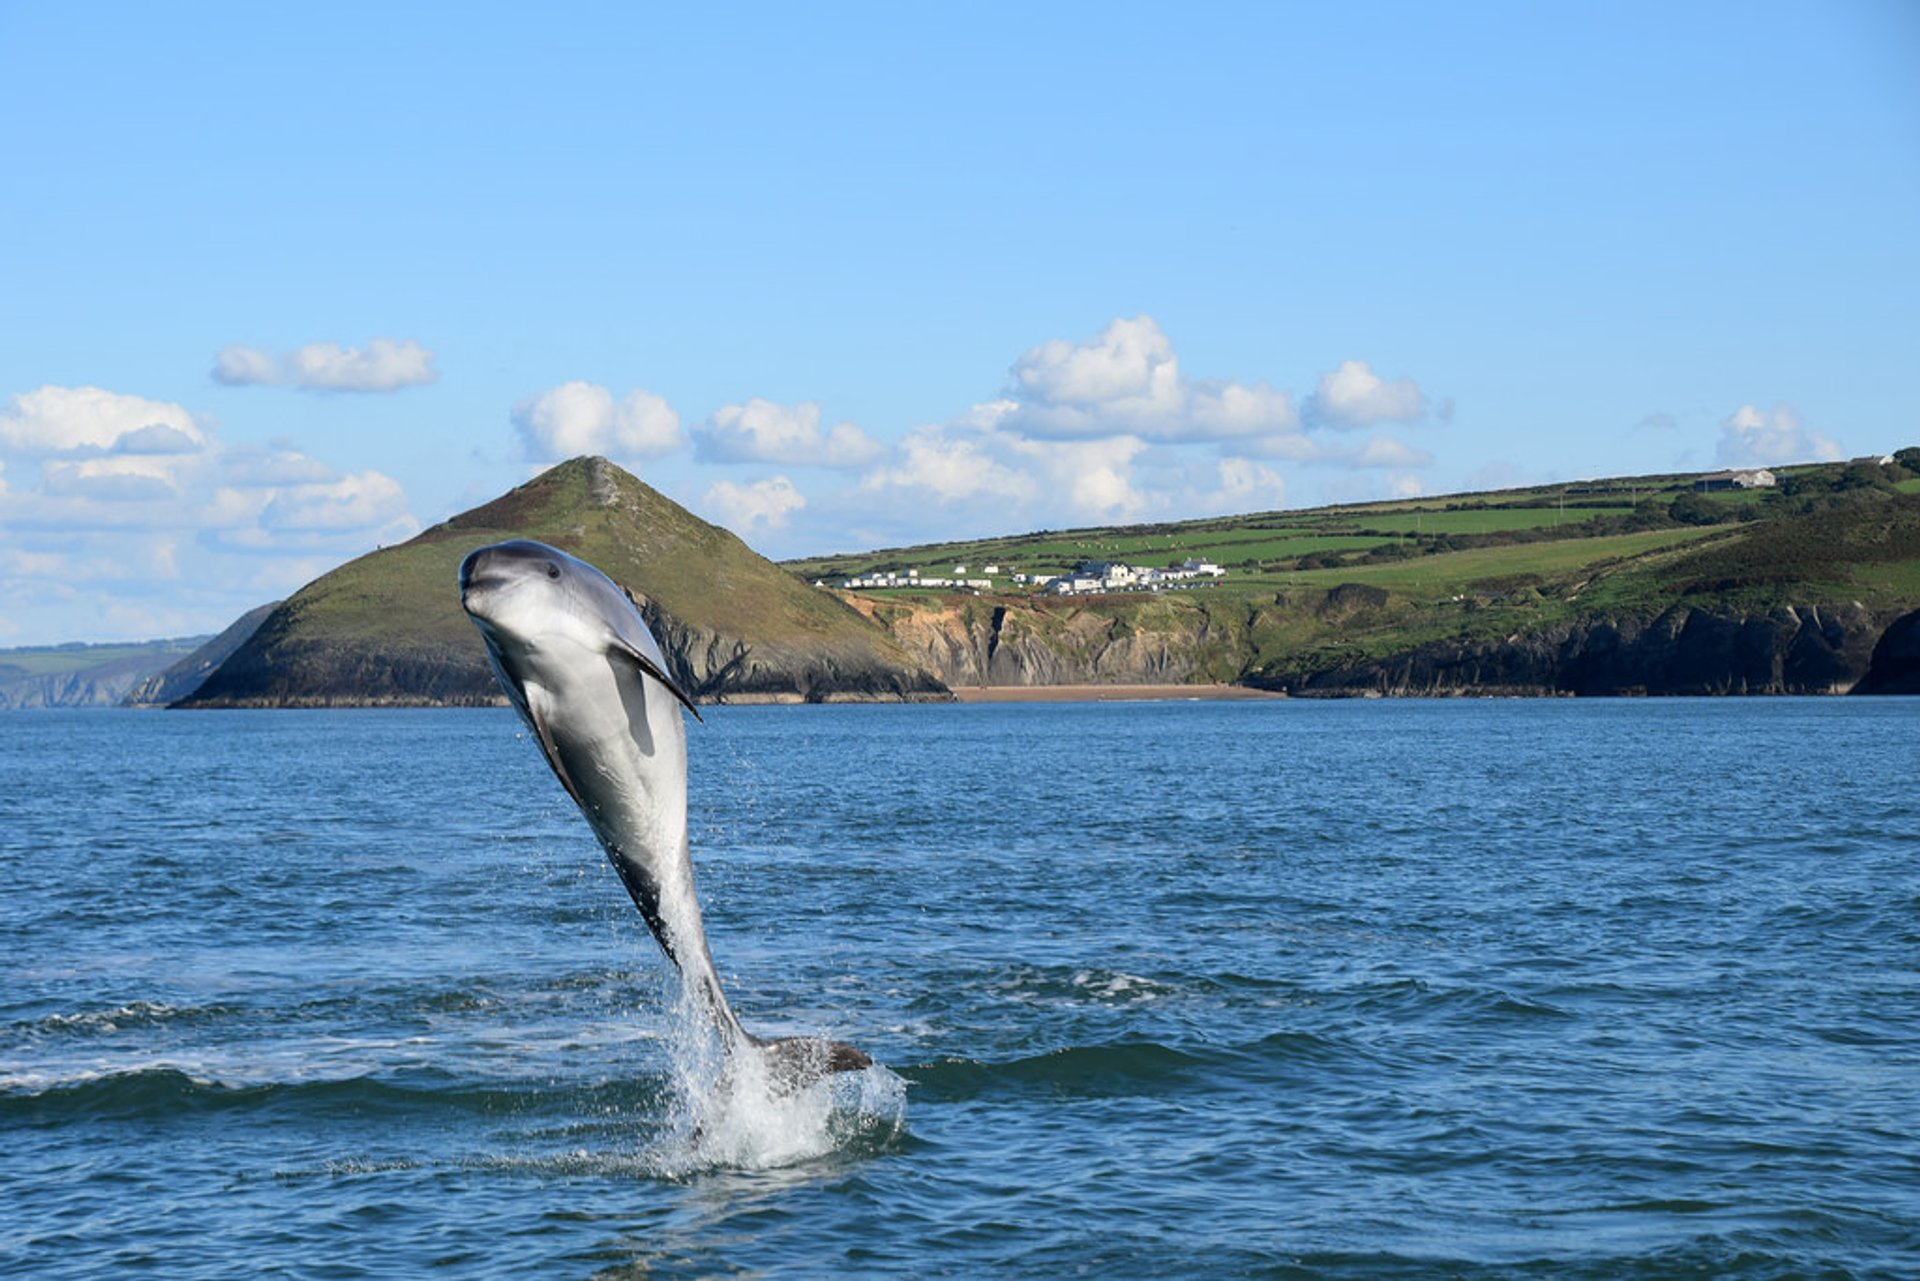 Bottlenose Dolphins in Cardigan Bay in Wales 2020 - Best Time